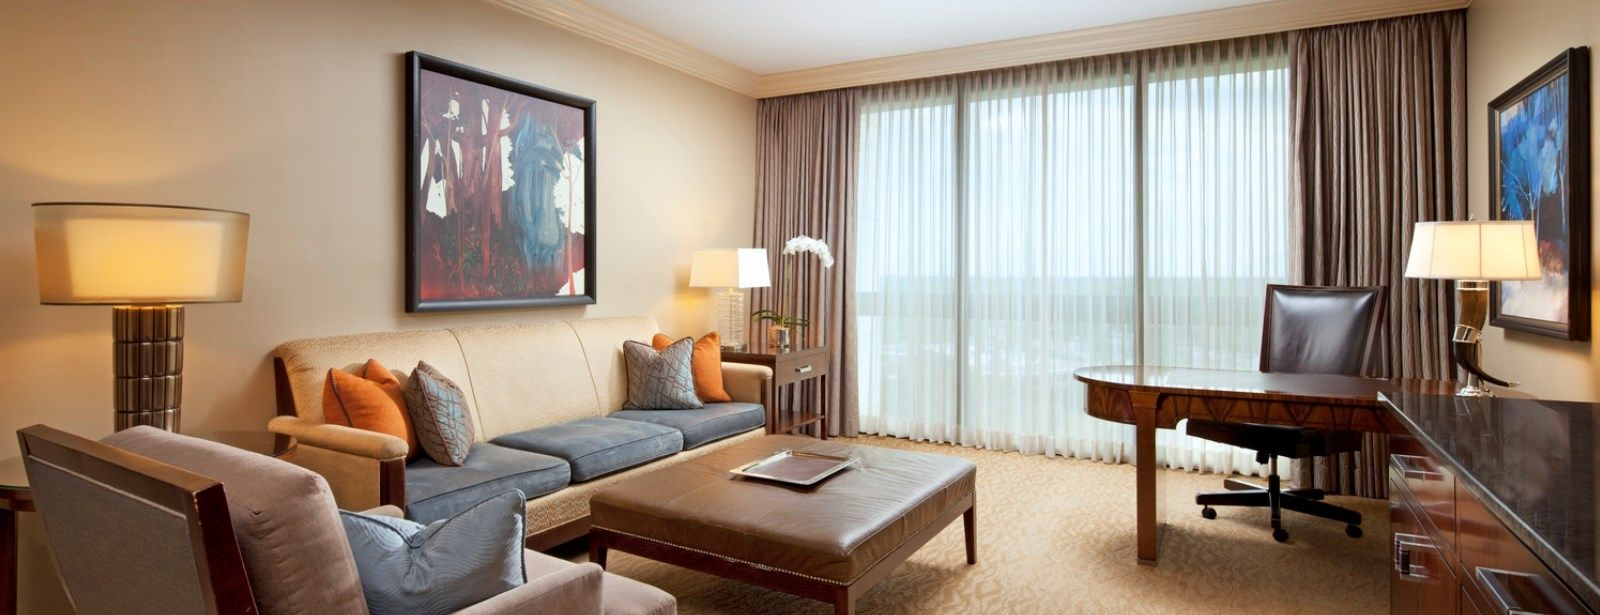 Astor St. Regis Suite - Luxury Hotels in Houston - The St. Regis Houston Hotel